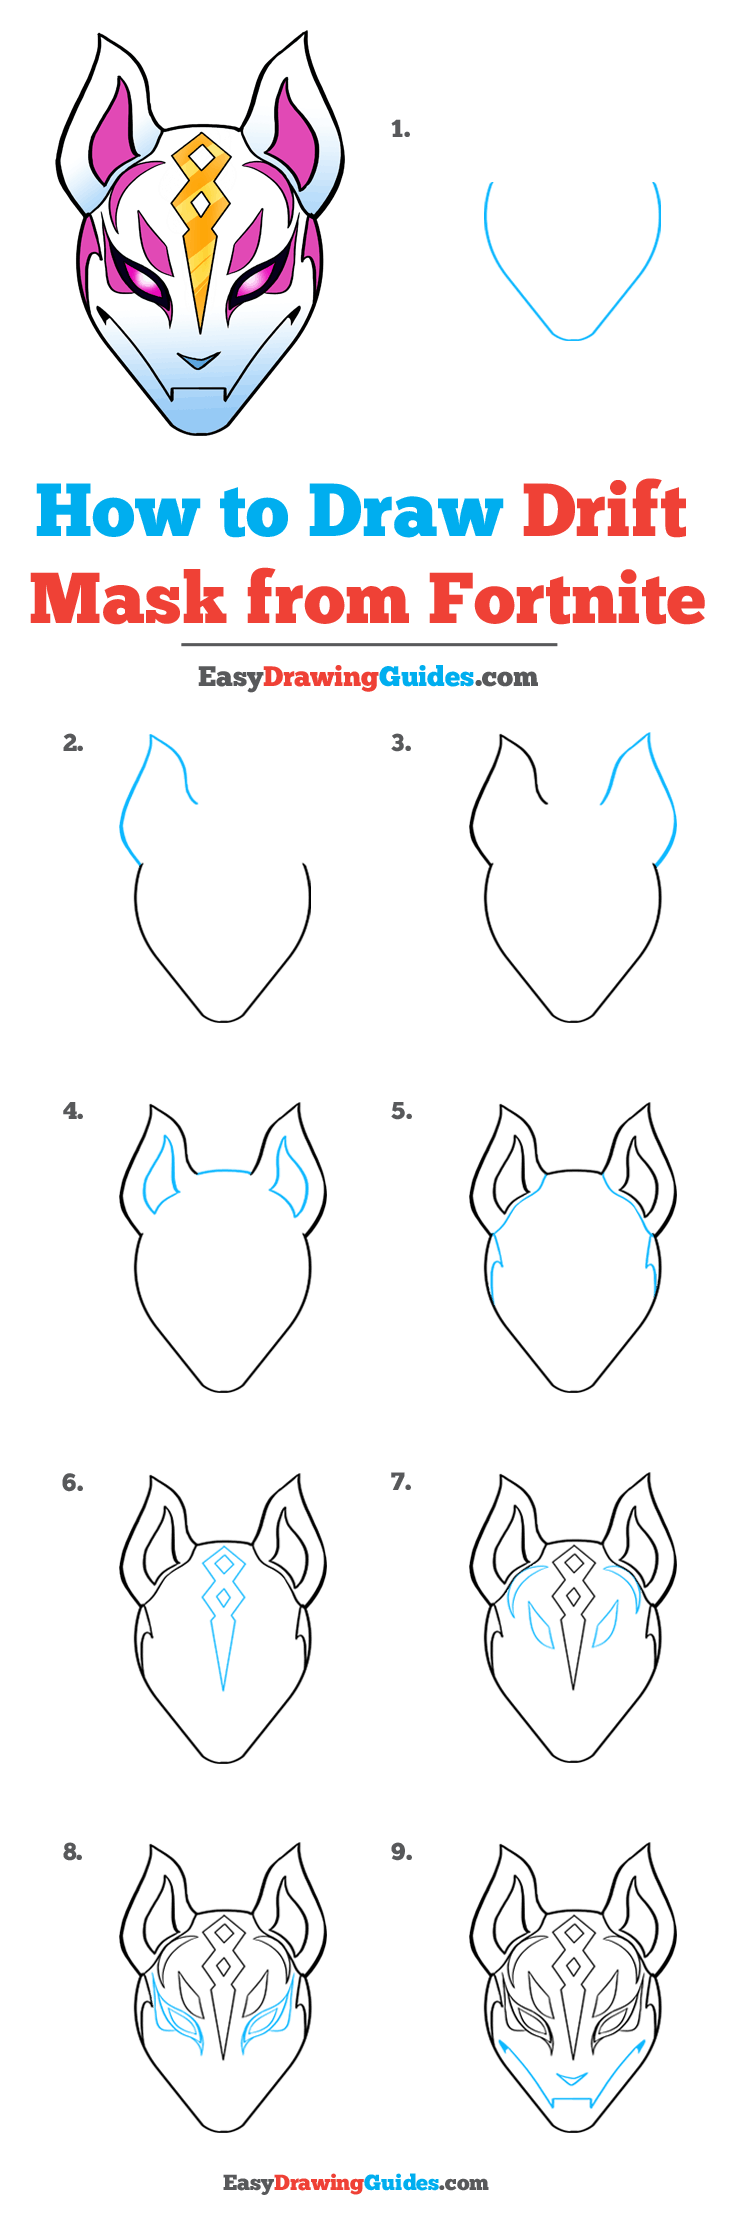 How to Draw Drift Mask from Fortnite